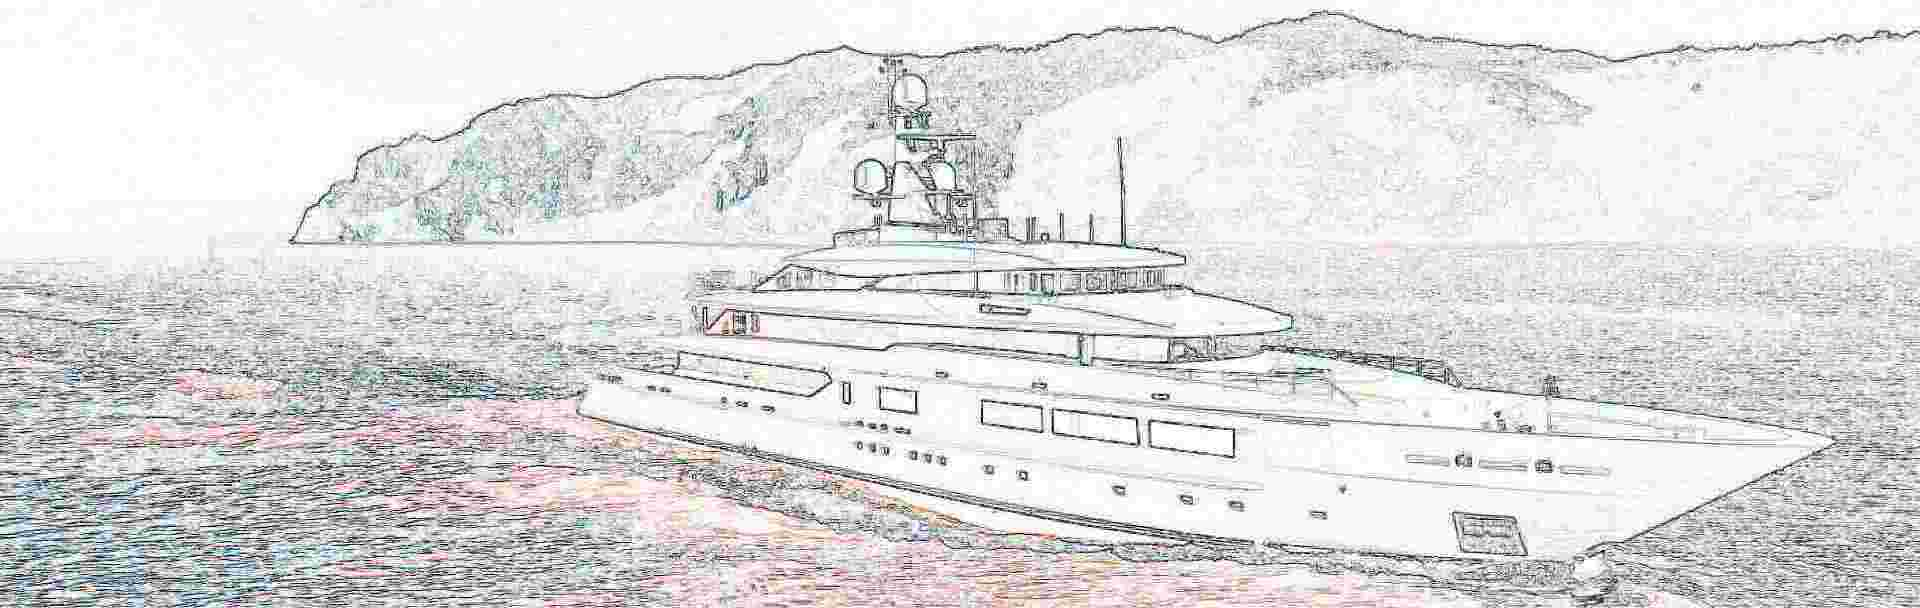 Canella Yachts Broker